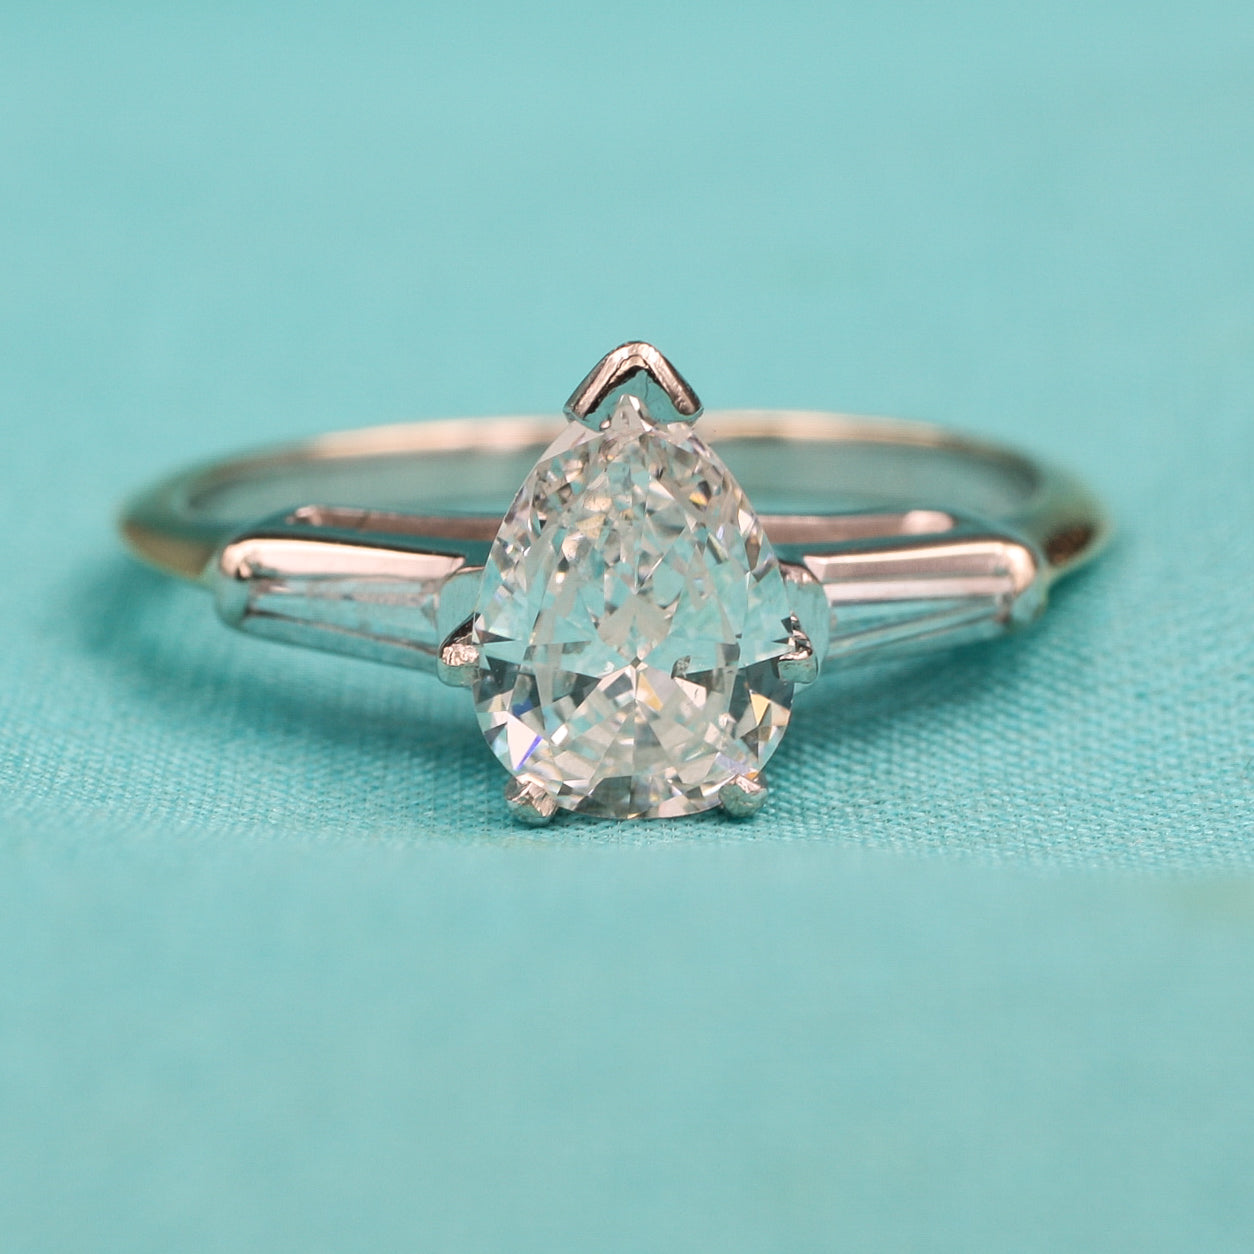 1960s-70s Pear and Baguette Diamond Ring